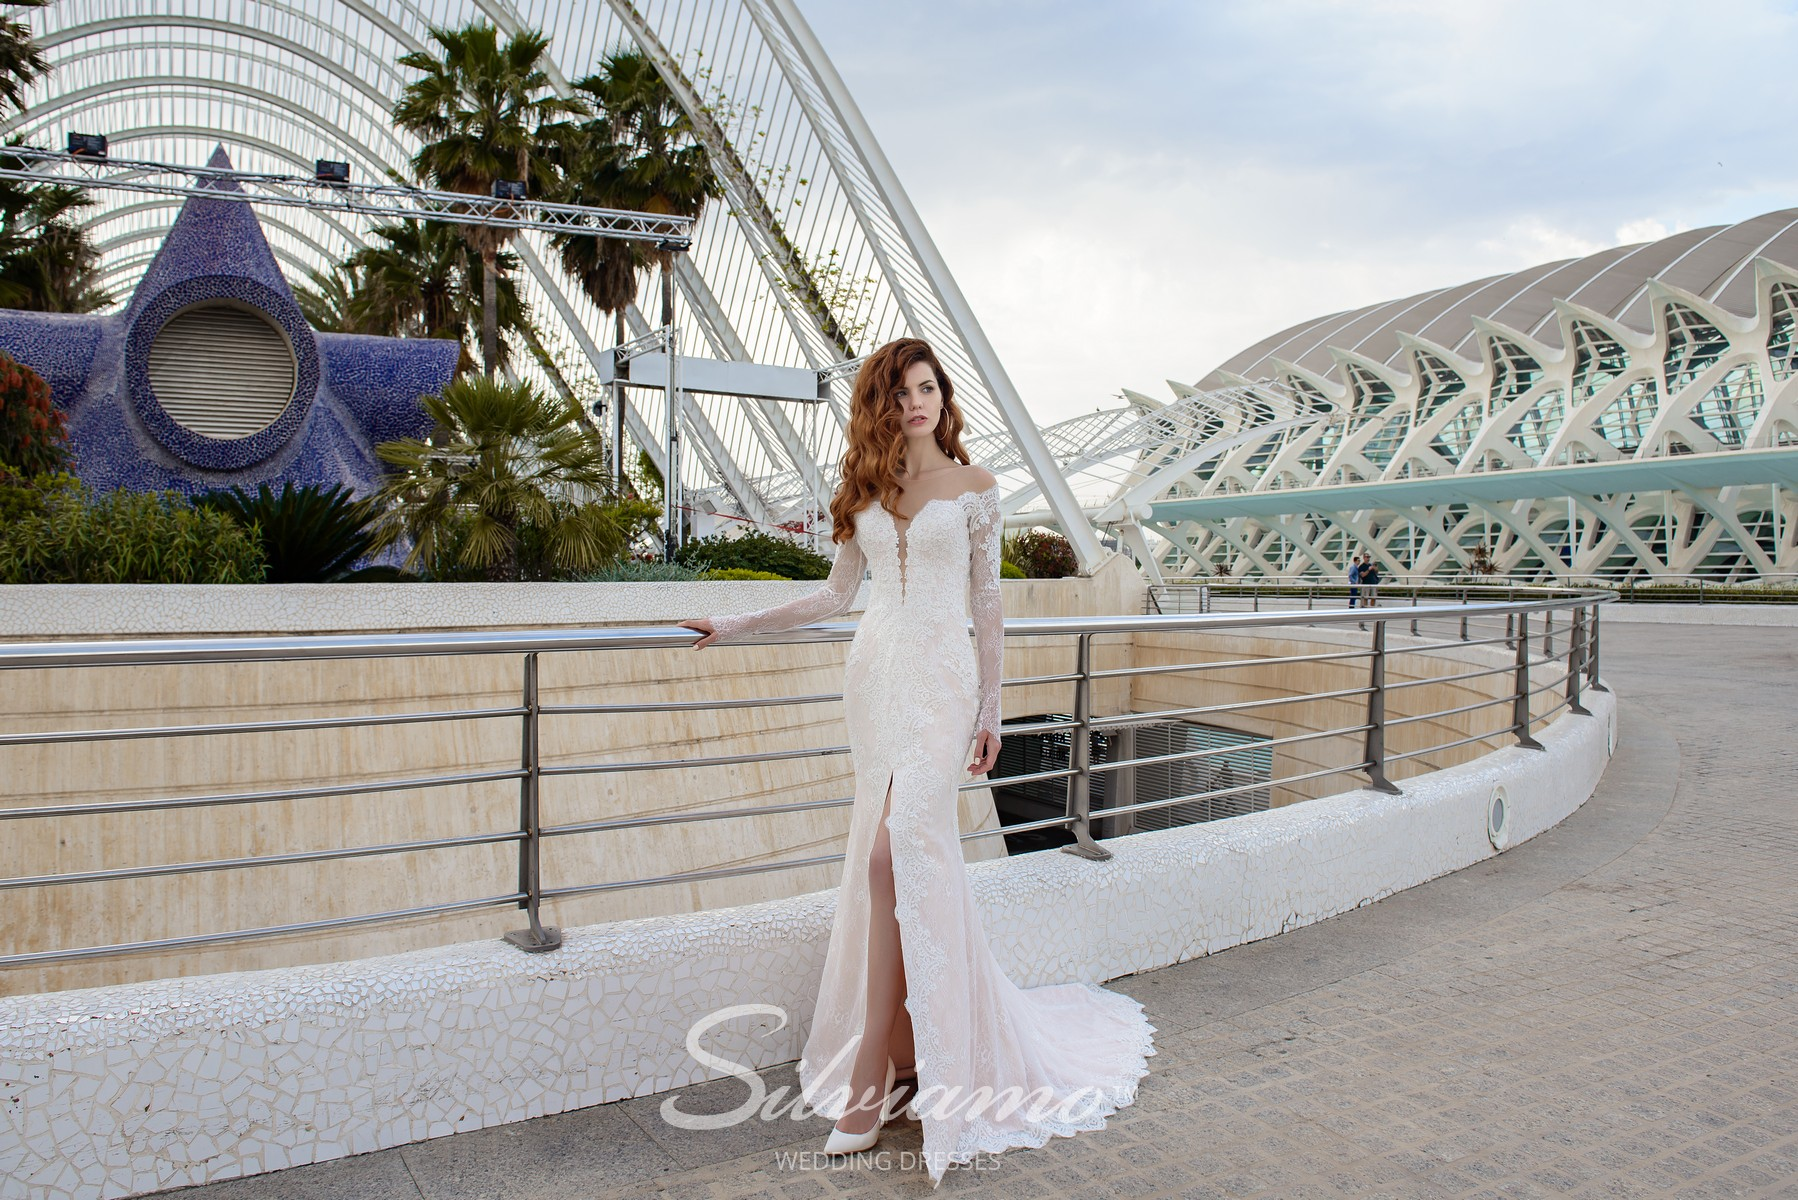 Guipure wedding dress of godet silhouette with V-shaped neckline from the Silviamo company-1